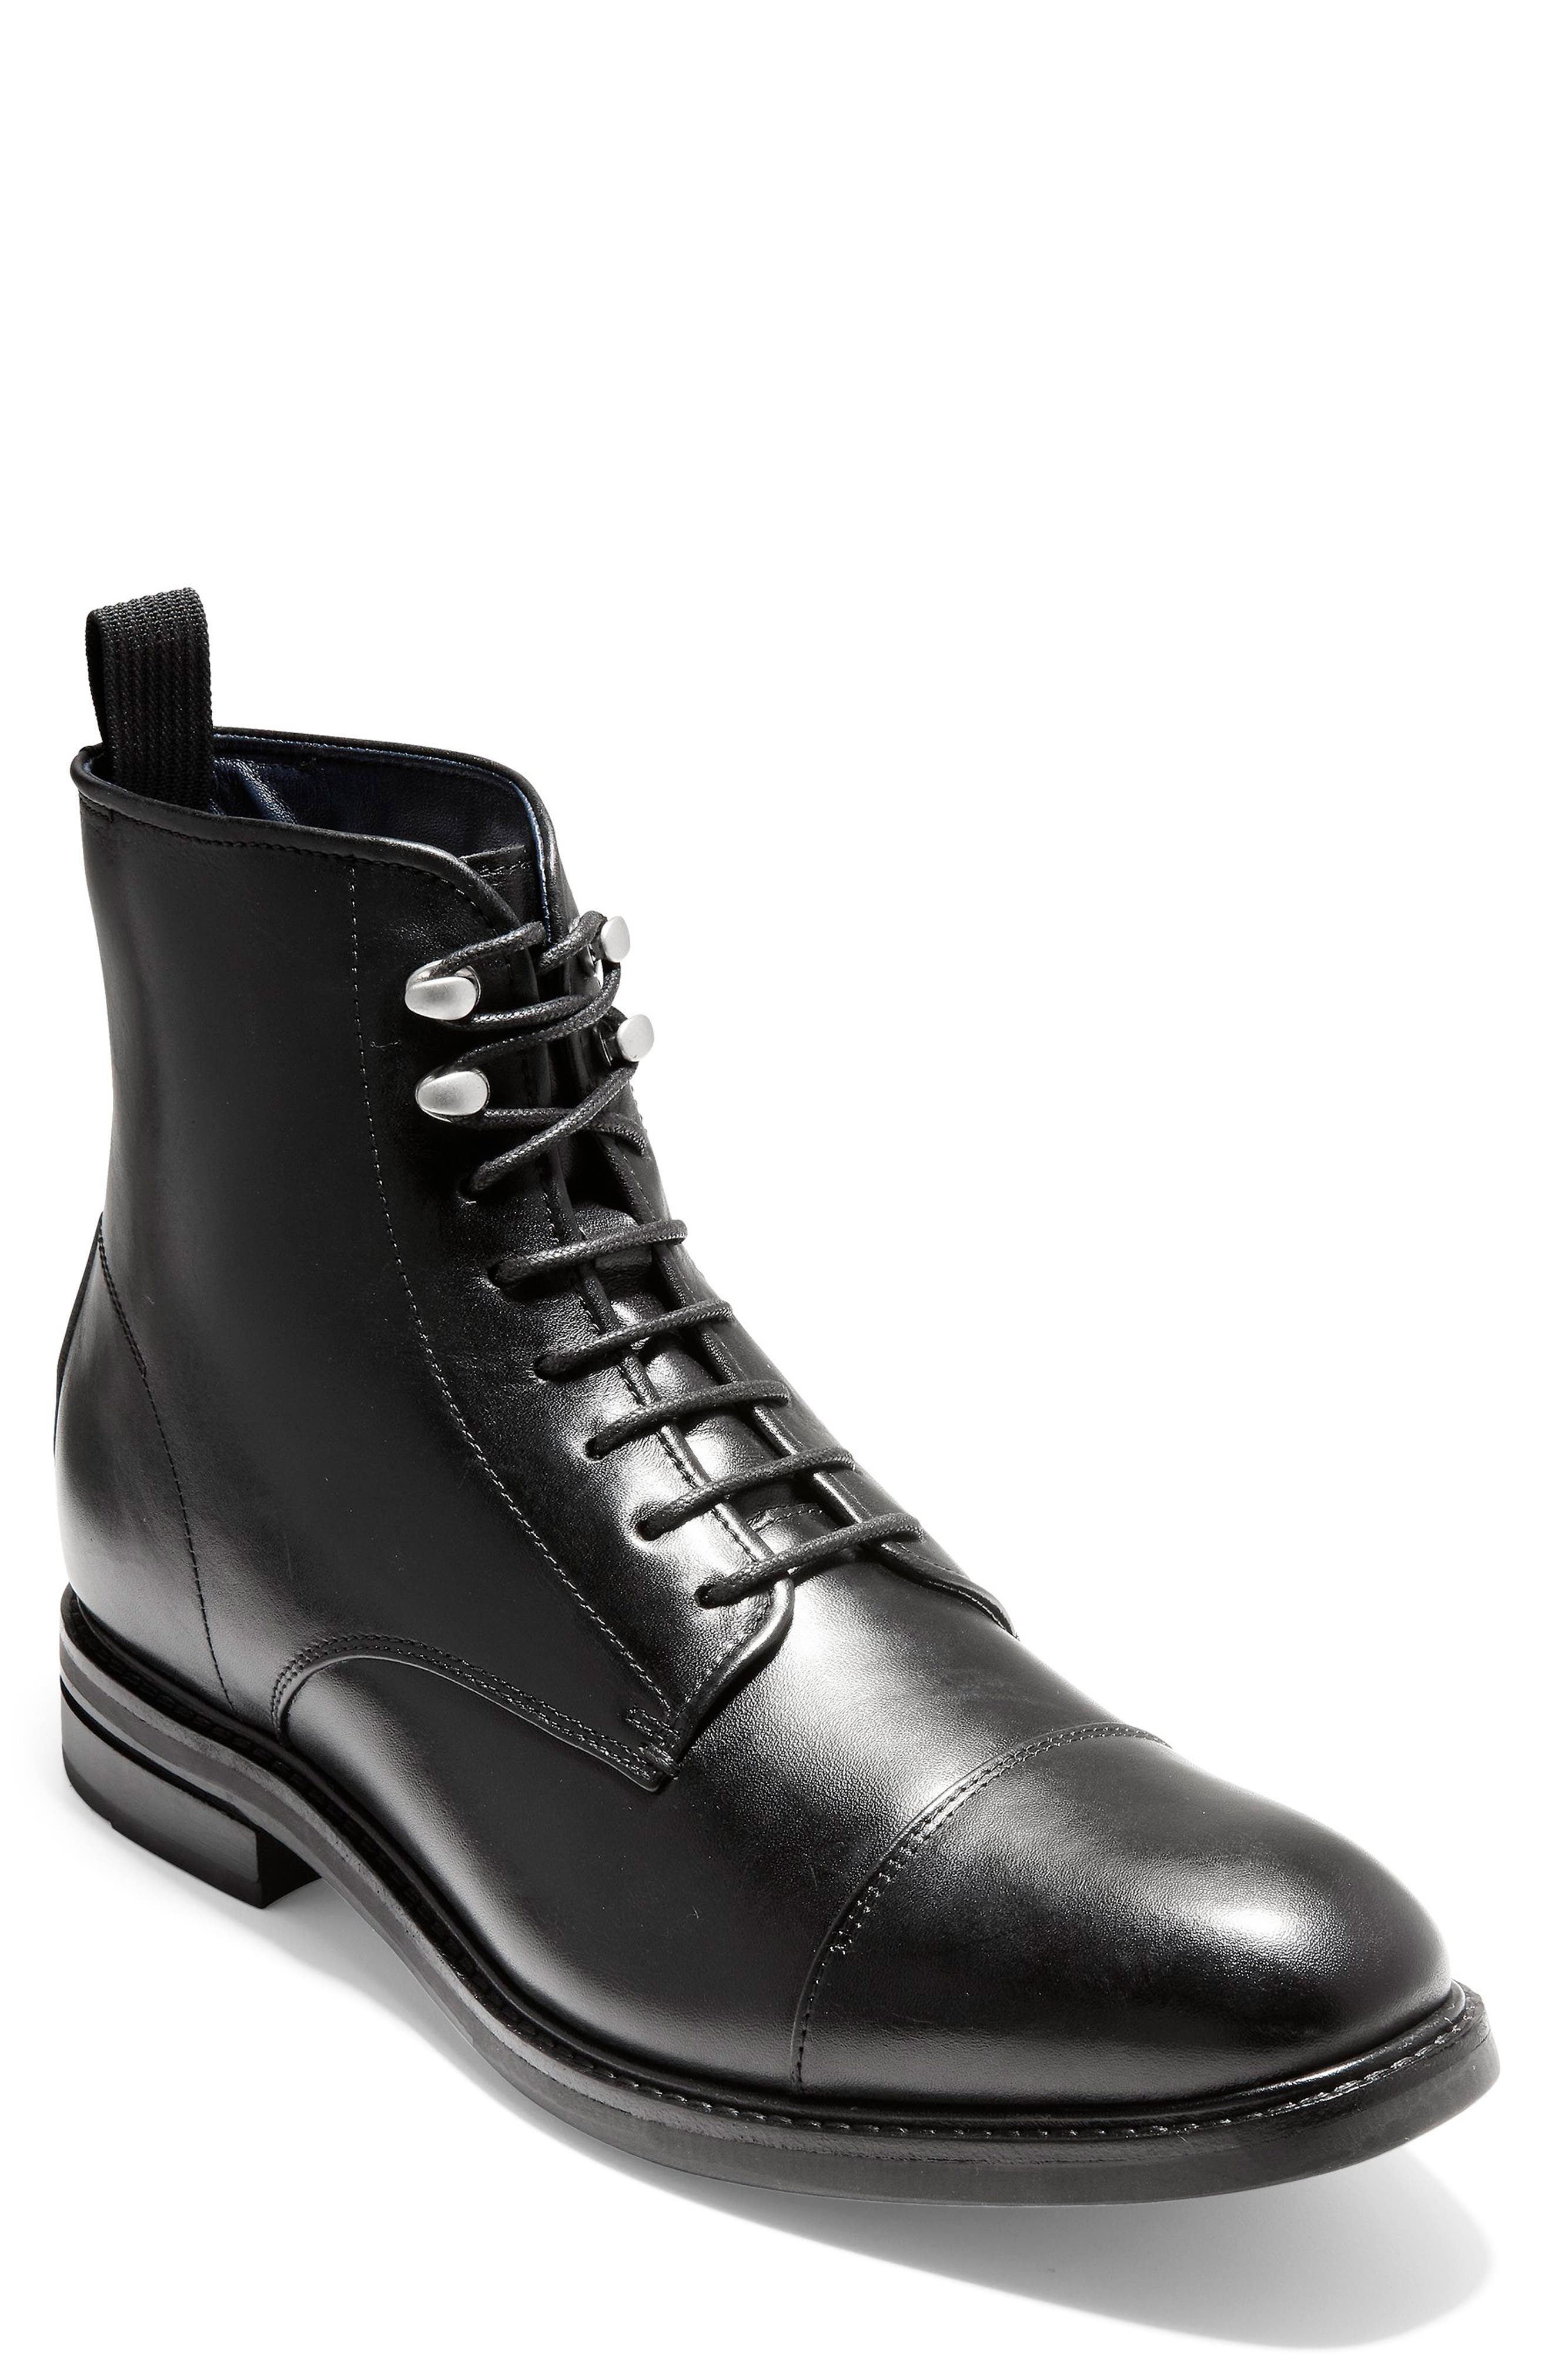 Wagner Grand Cap Toe Boot,                         Main,                         color, BLACK LEATHER